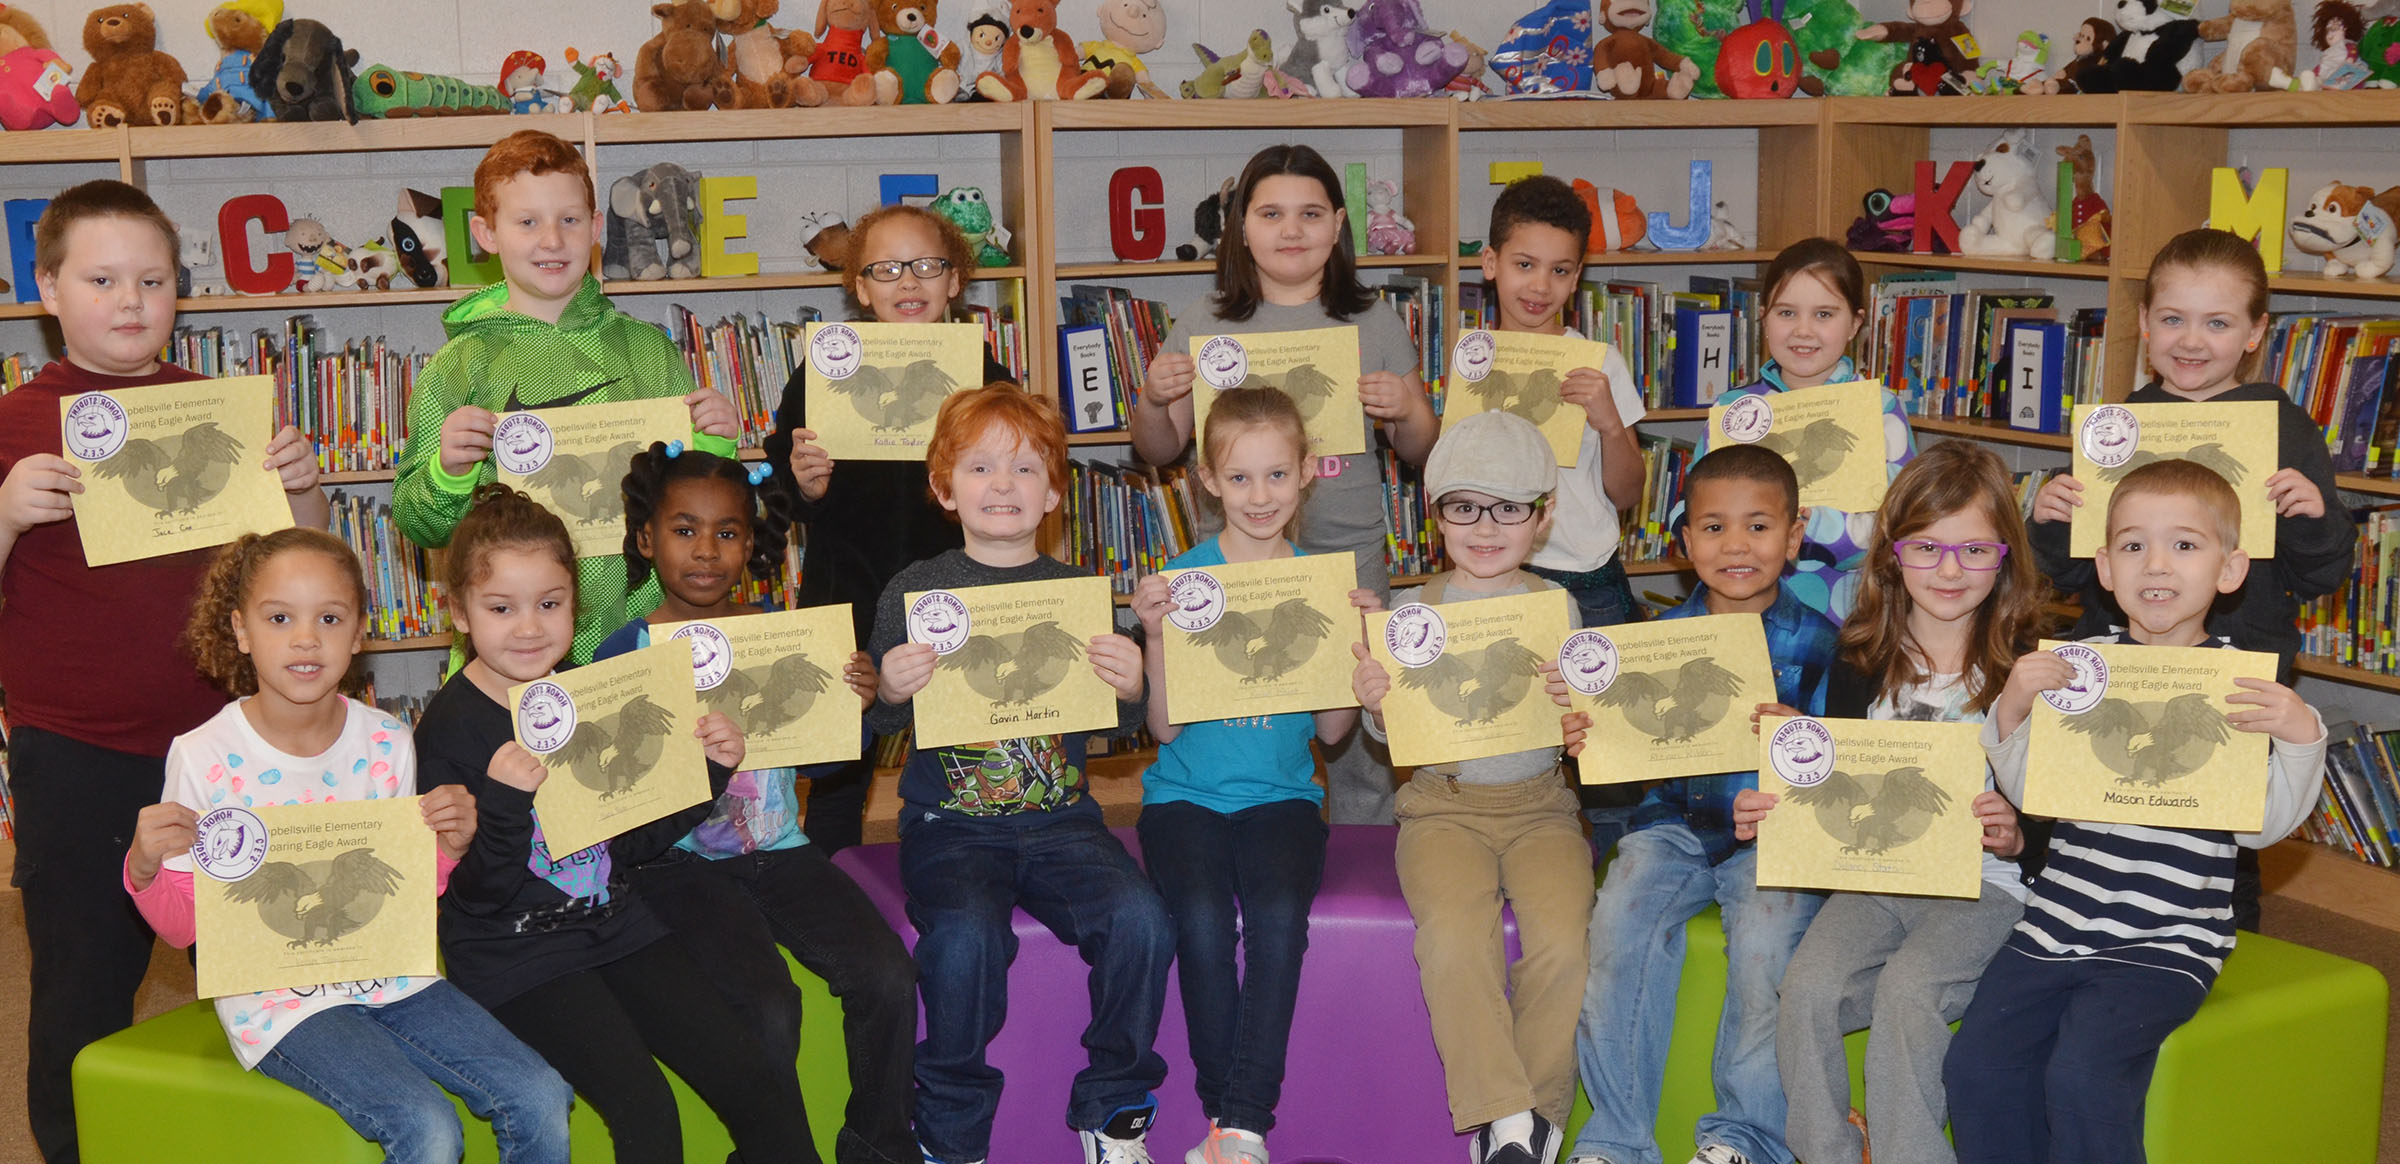 From left, front, are first-graders Keiava Thompson, Nadia Taylor and Destini Gholston, second-grader Gavin Martin, third-grader Kendall Bright and kindergarteners Gavin Williams, Ahryan Wilson, Delaney Staton and Mason Edwards. Back, third-grader Jace Cox, second-graders Reece Swafford and Kallie Taylor, third-grader Kailei Hernandez, first-grader Bryant Mayo, third-grader Maylee Wilds and first-grader Frehley Whitlow. Second-grader Analeigh Foster isn't pictured.